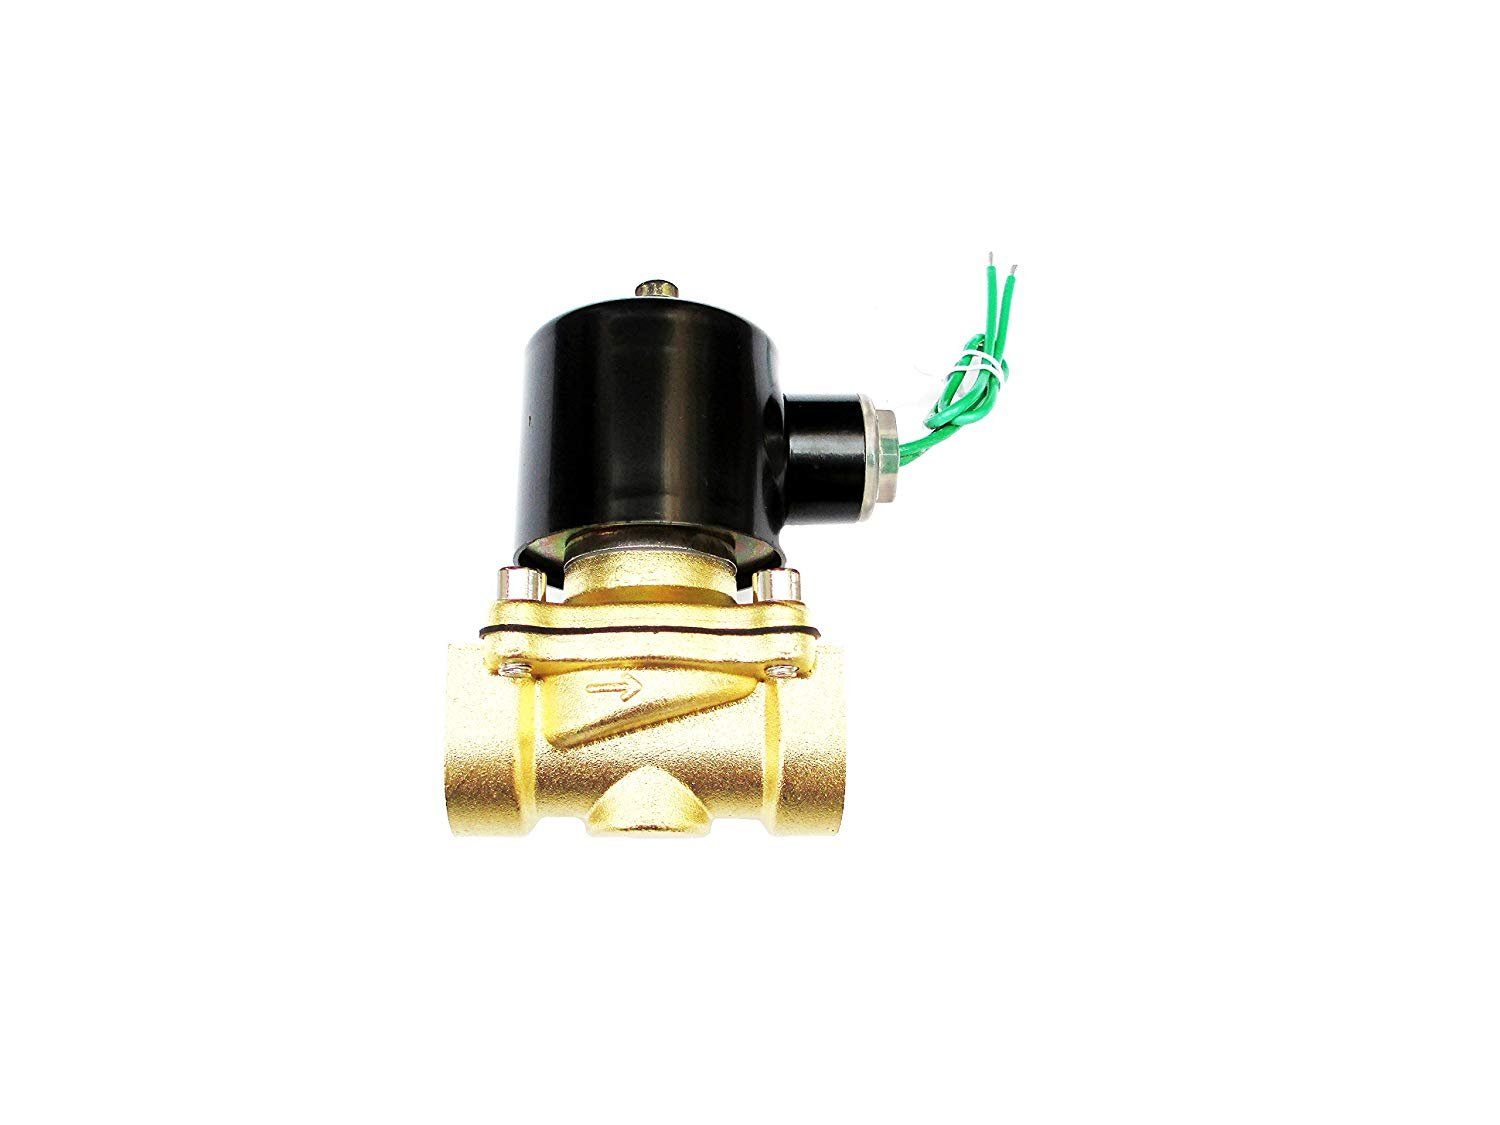 3/4 Inch 24 VAC Normally Closed Brass Solenoid Valve by Carb Omar